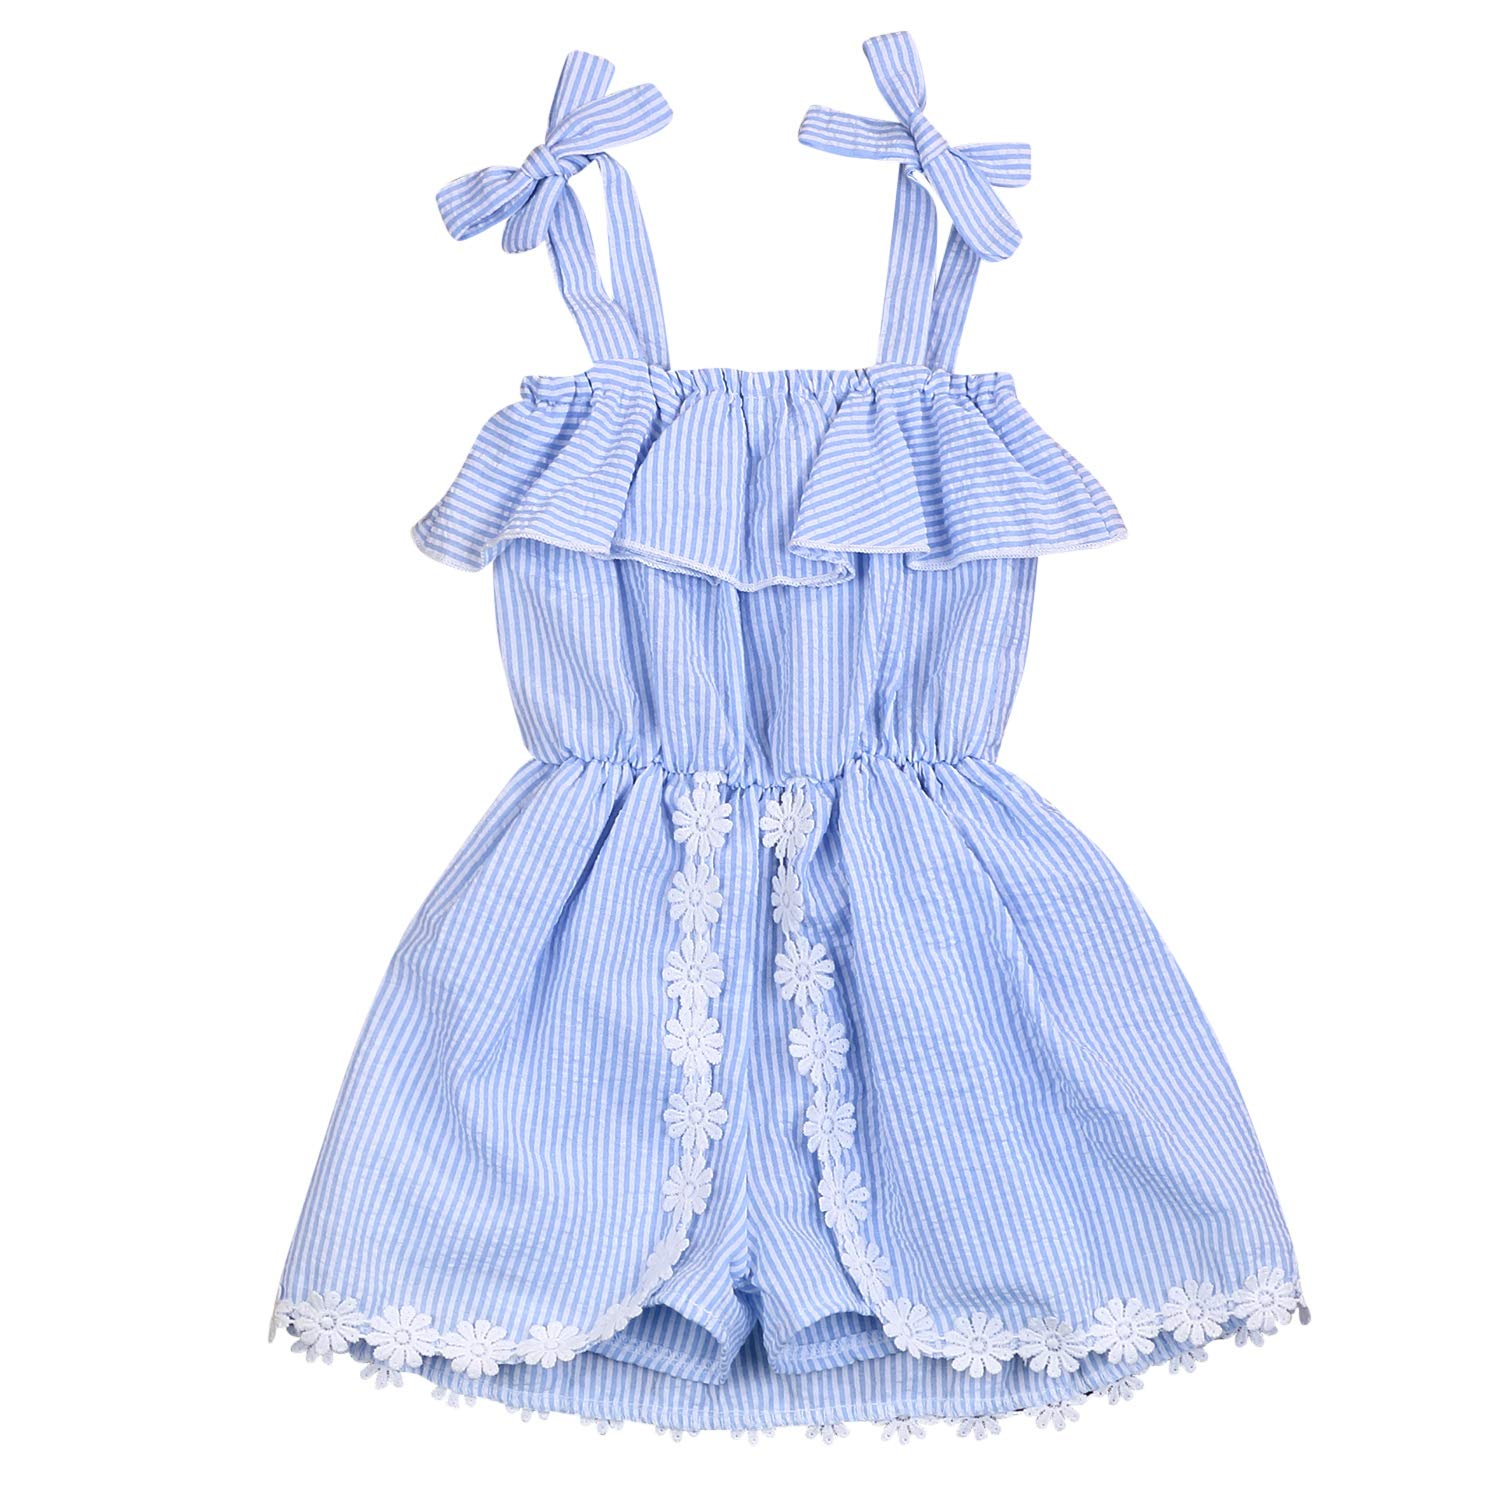 YOUNGER TREE Toddler Kids Baby Girl Stripe Shirt Dress Romper Floral Suspender Jumpsuit Short Playsuit Summer Outfits Clothes (Blue, 3/4 T)